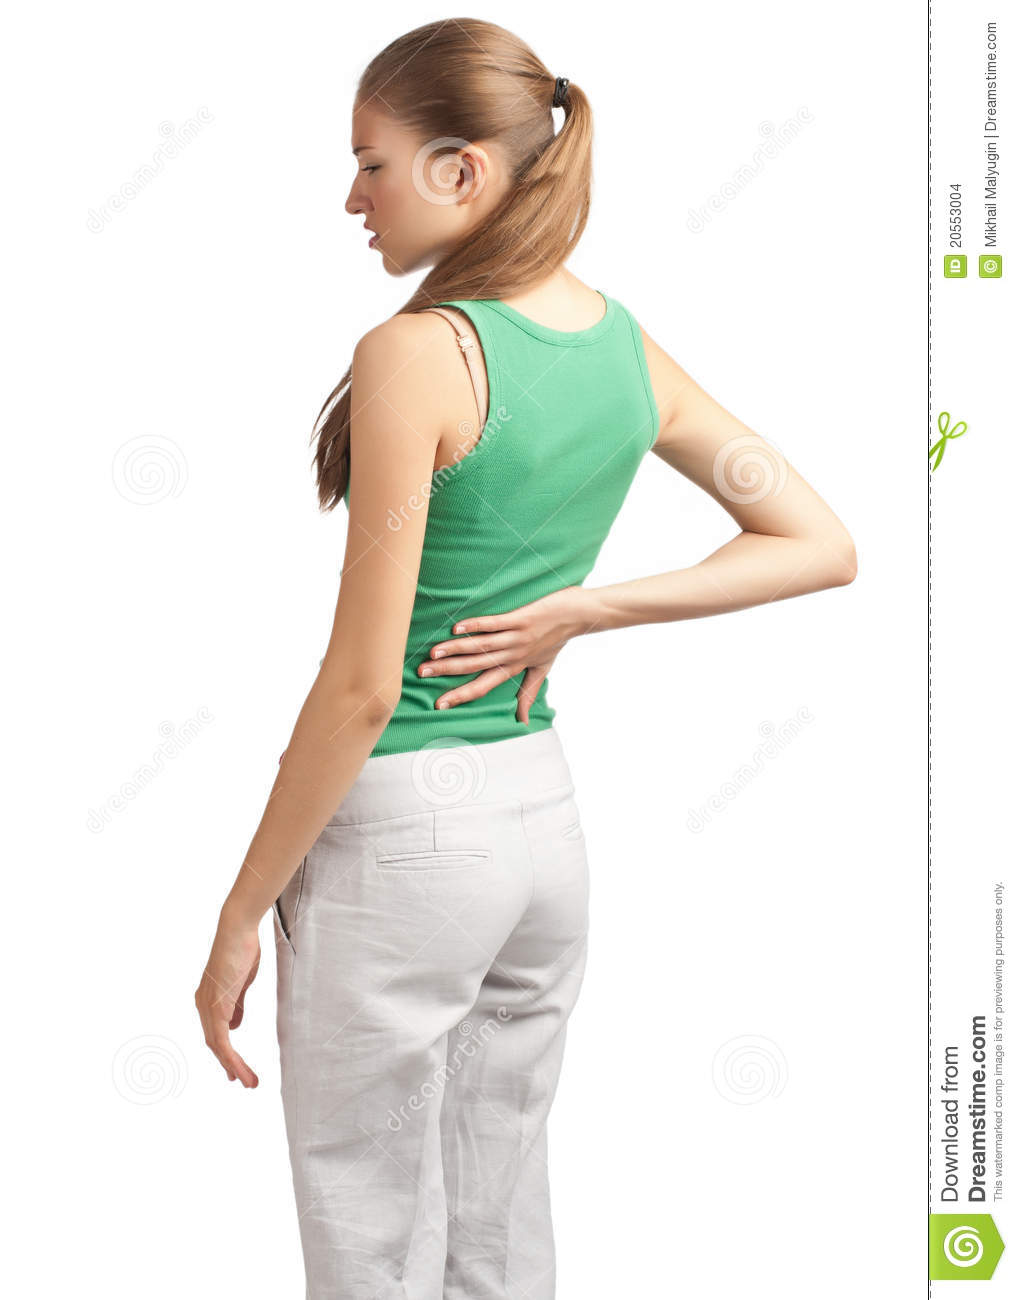 Young Woman Suffering From Back Pain Stock Photo - Image